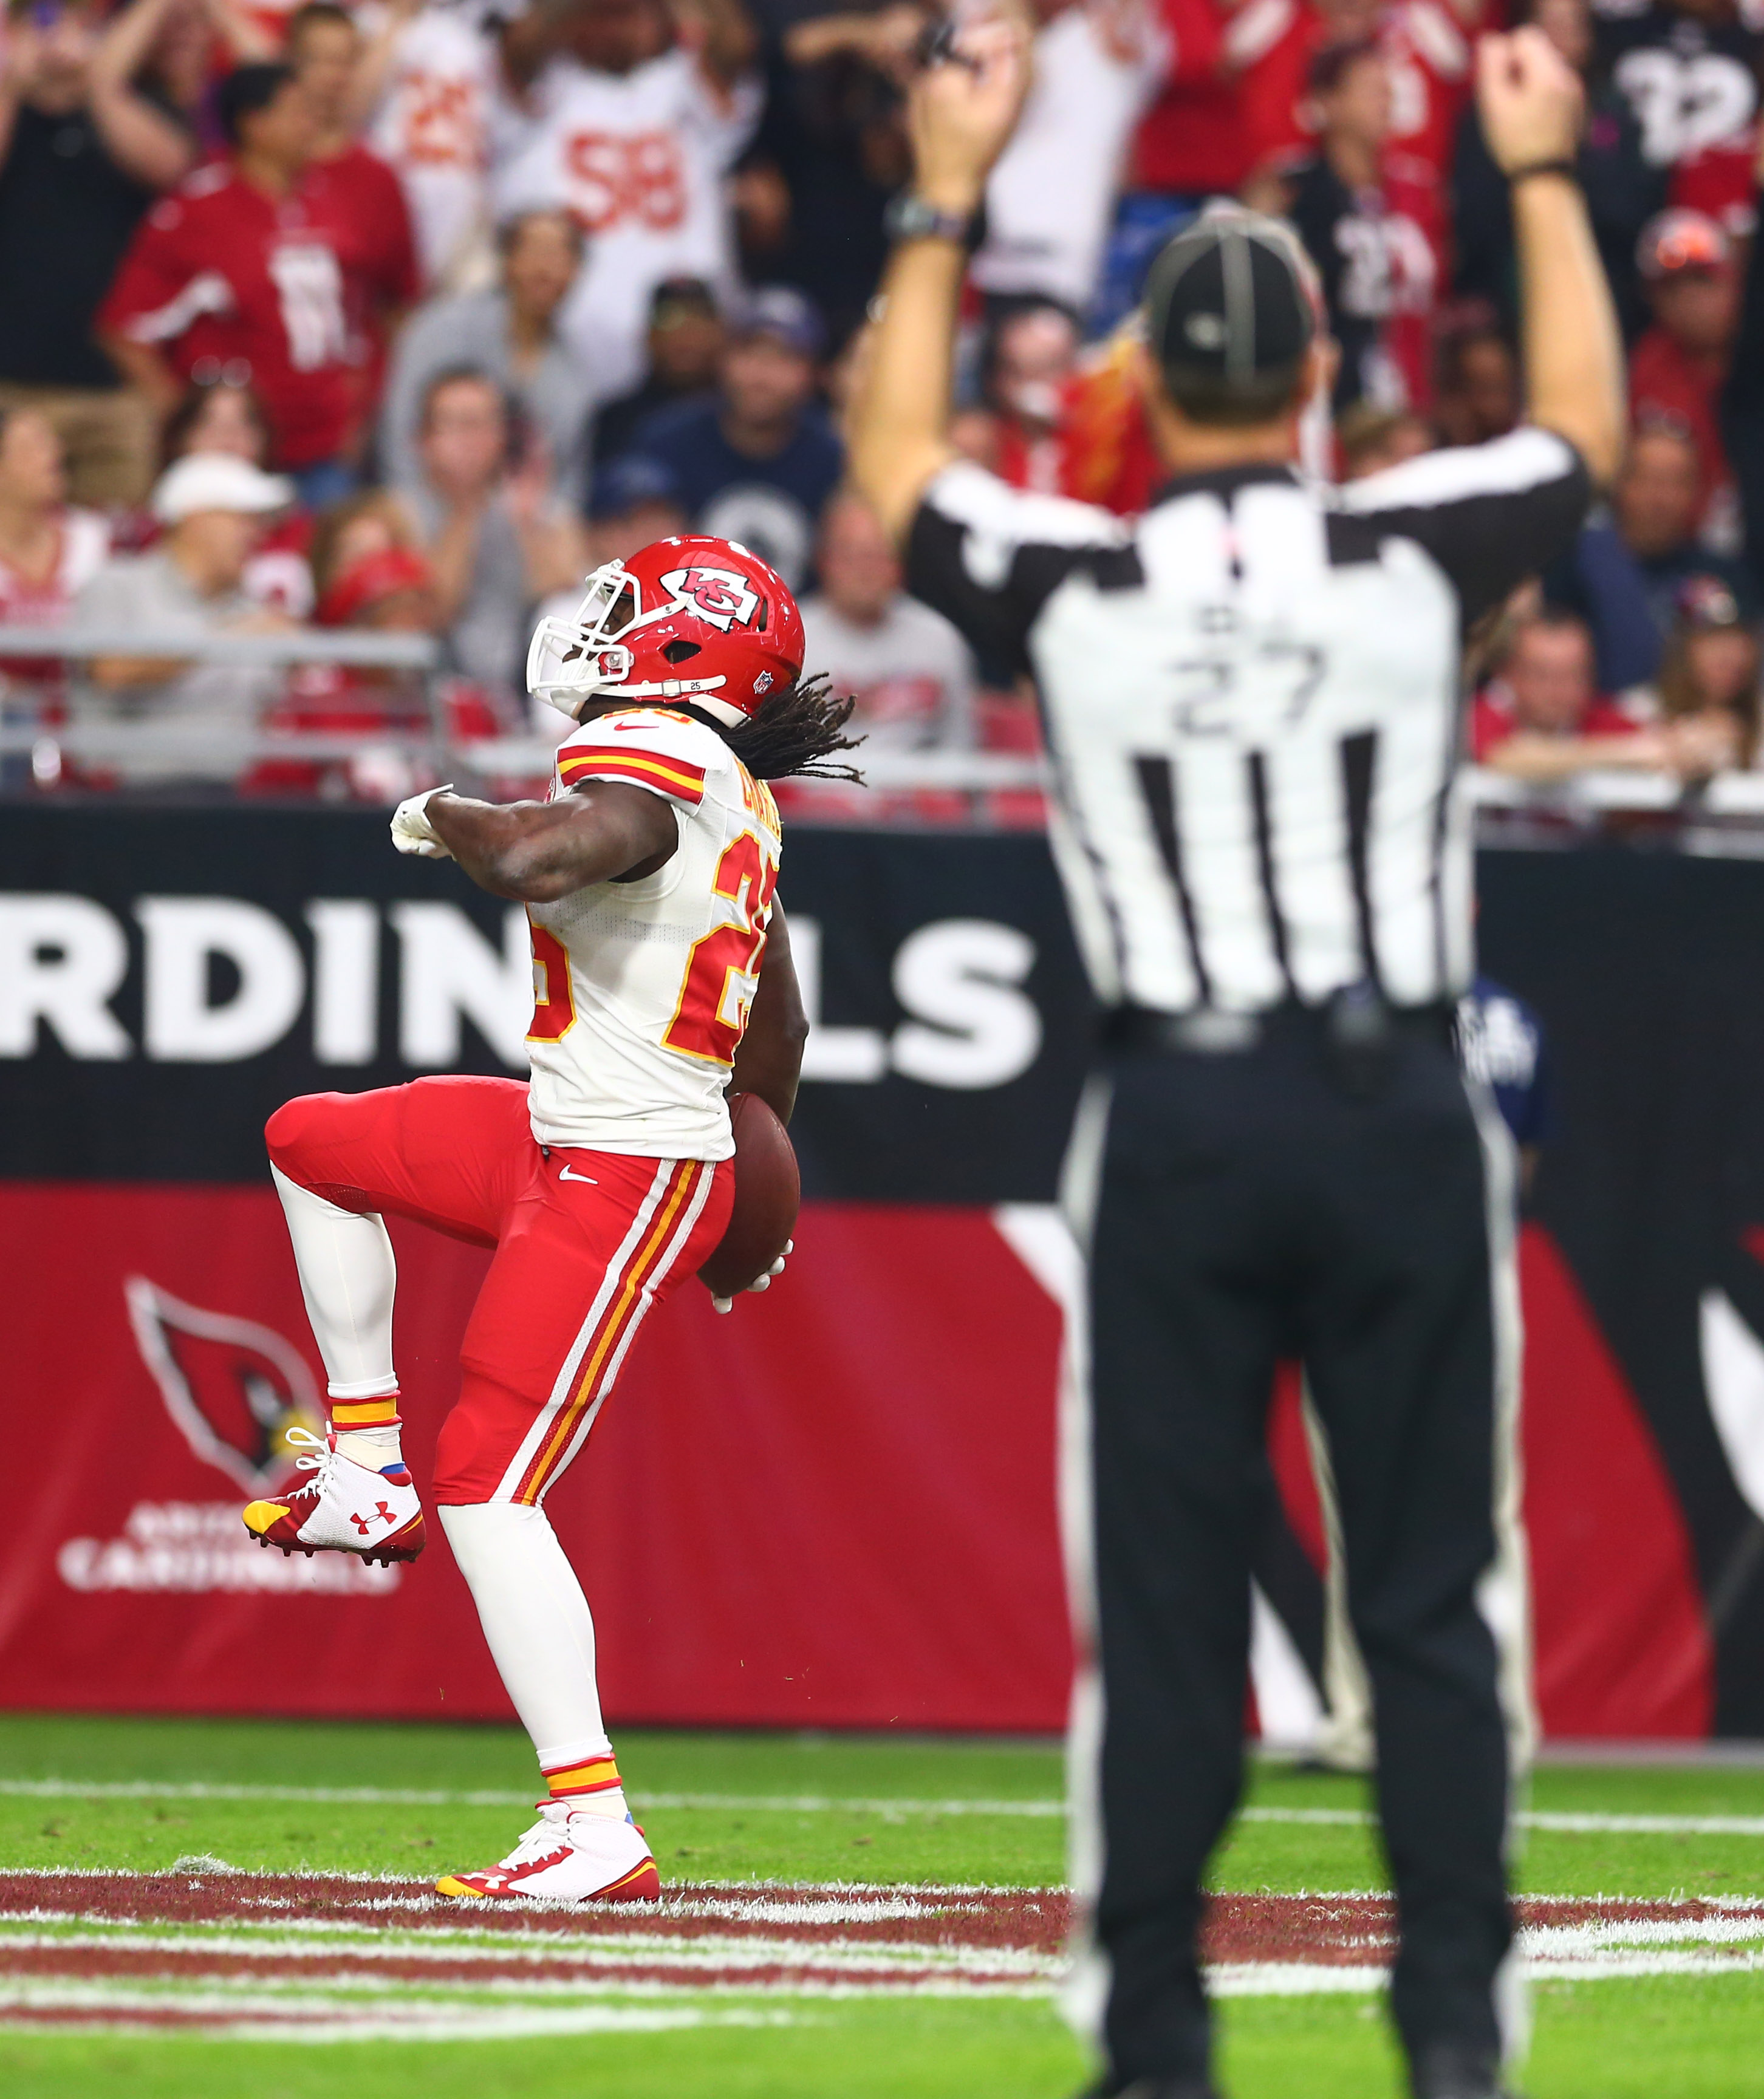 Jamaal Charles blames refs for 'crazy' calls in Chiefs' loss